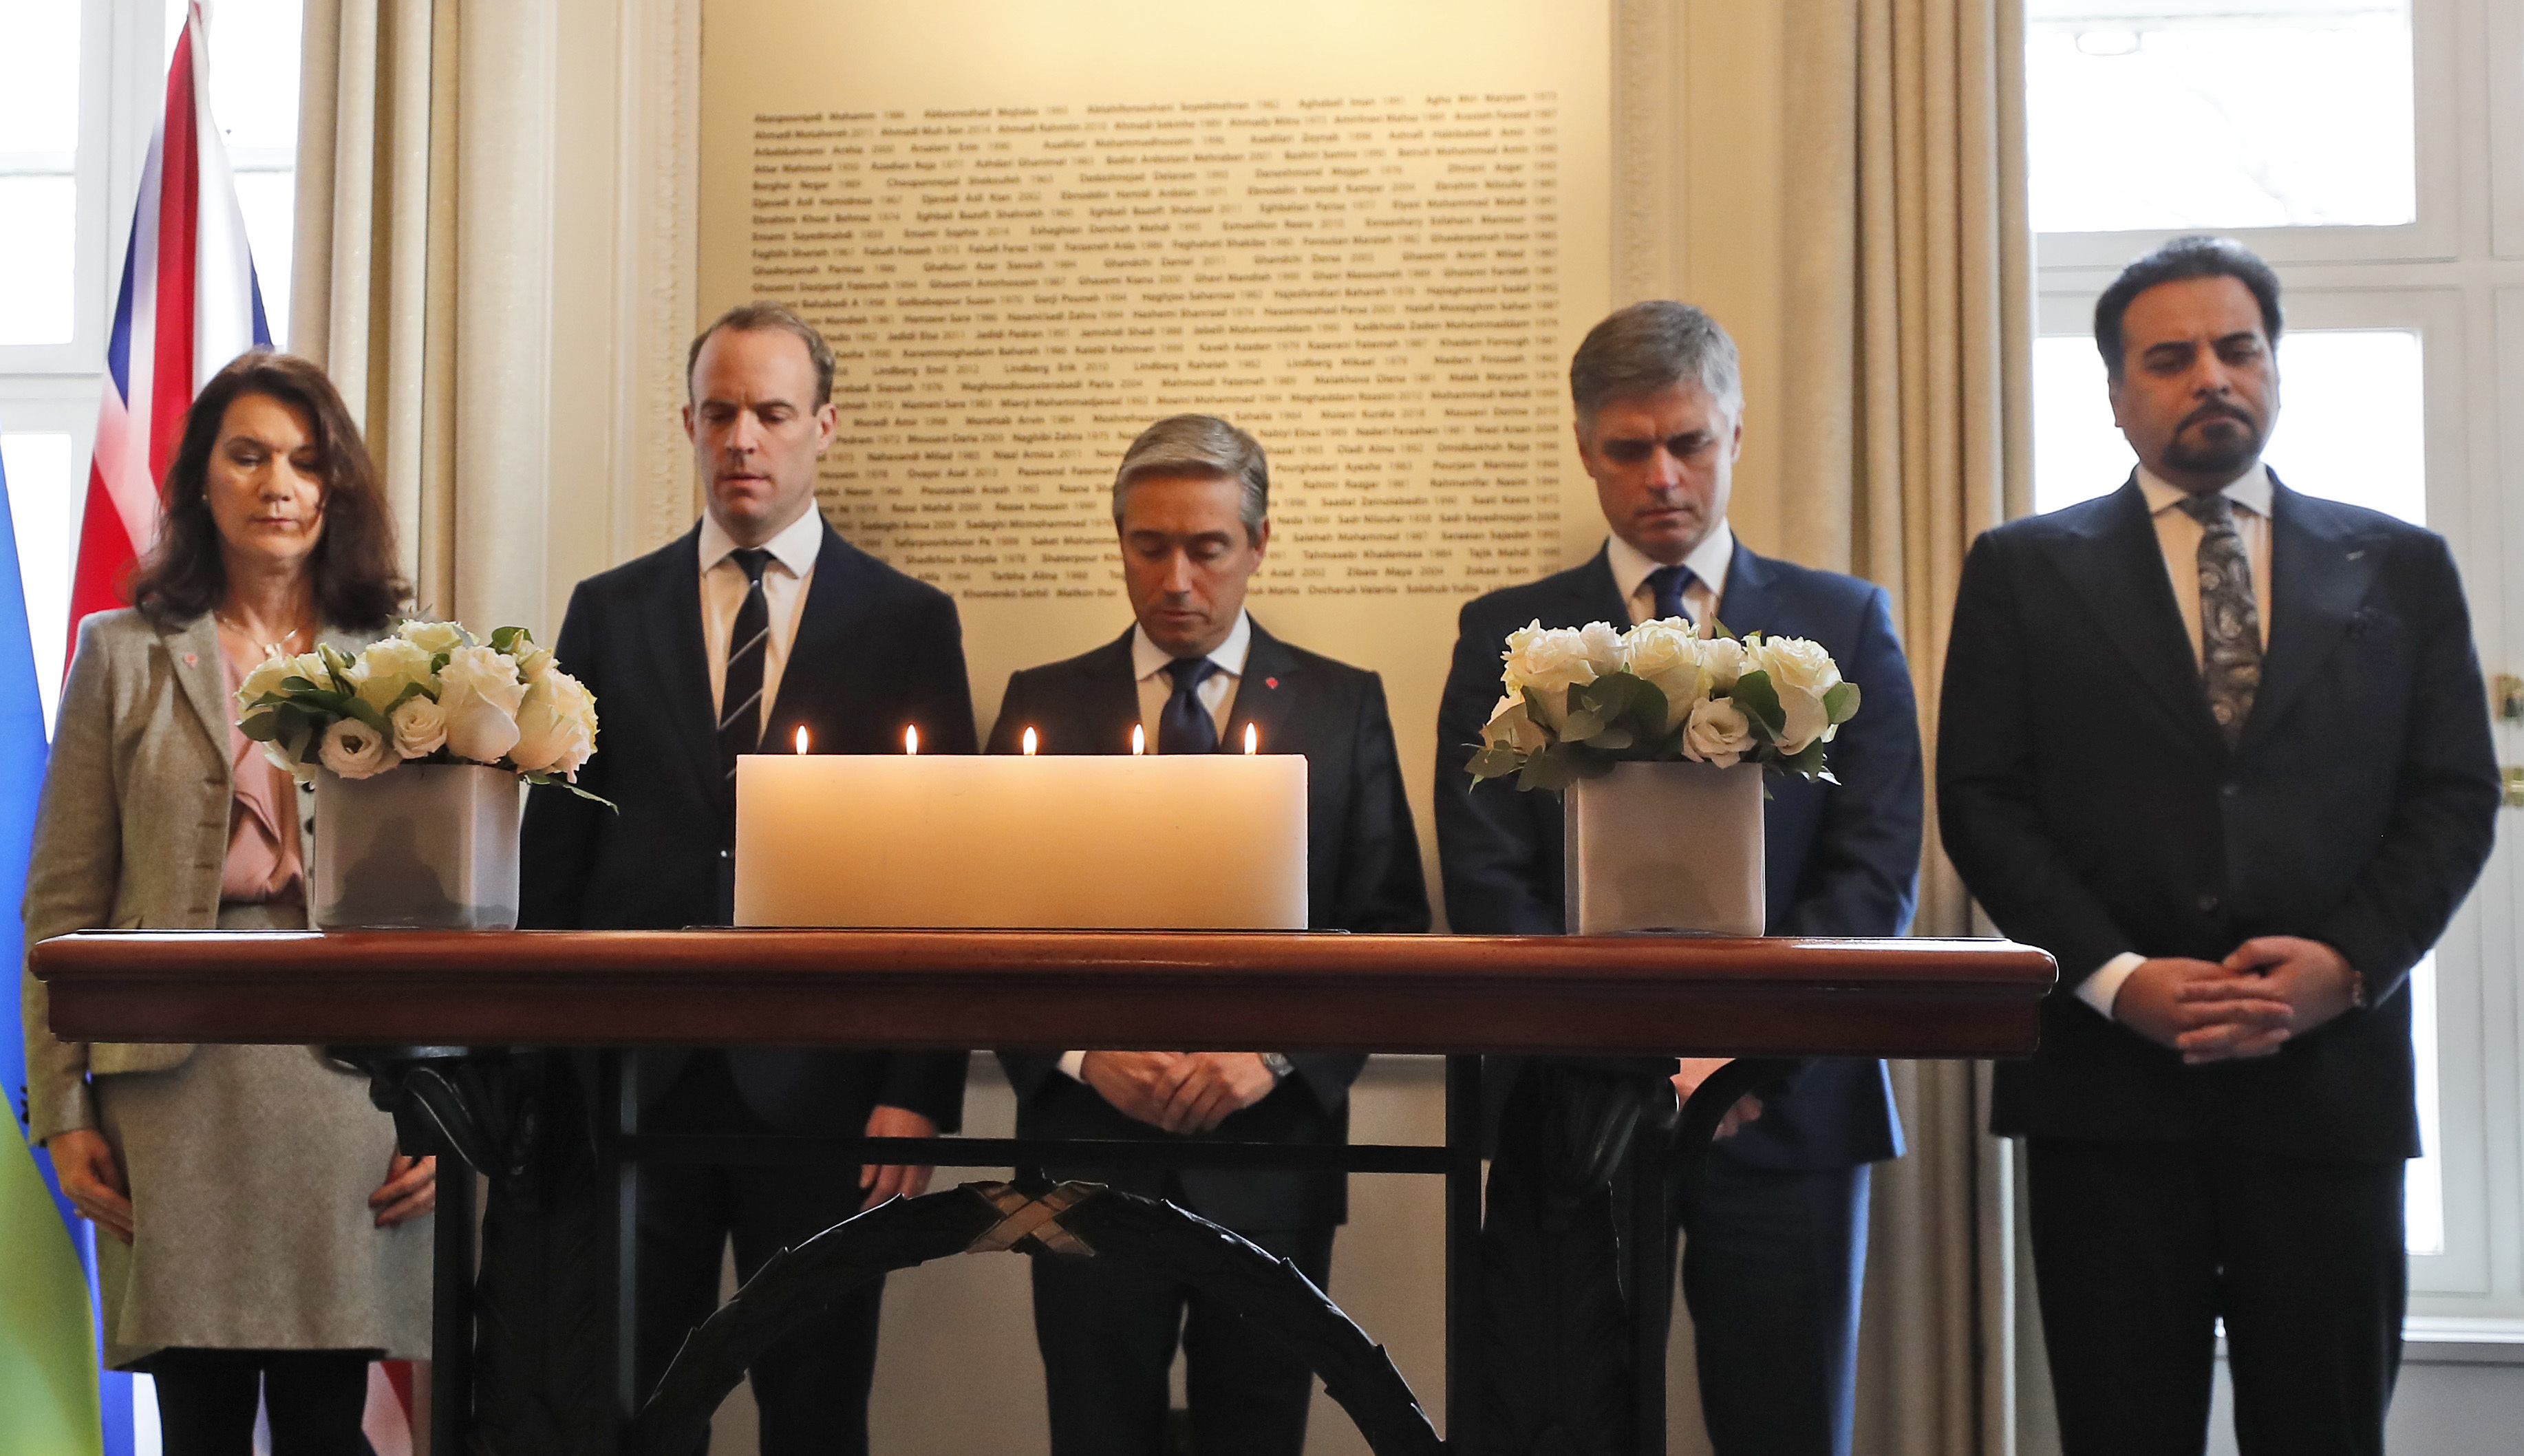 Francois-Philippe Champagne, Canada Minister of Foreign Affairs, centre, Ukraine Minister of Foreign Affairs Vadym Prystaiko, second right, United Kingdoms Secretary of State for Foreign Affairs Dominic Raab, second left, Sweden's Minister of Foreign Affairs Ann Linde, left, and Afghanistan's Foreign Minister Idrees Zaman, hold a minute of silence behind candles and in front of a plaque with the names of the victims of flight PS752, at the High Commission of Canada in London, Thursday, Jan. 16, 2020.